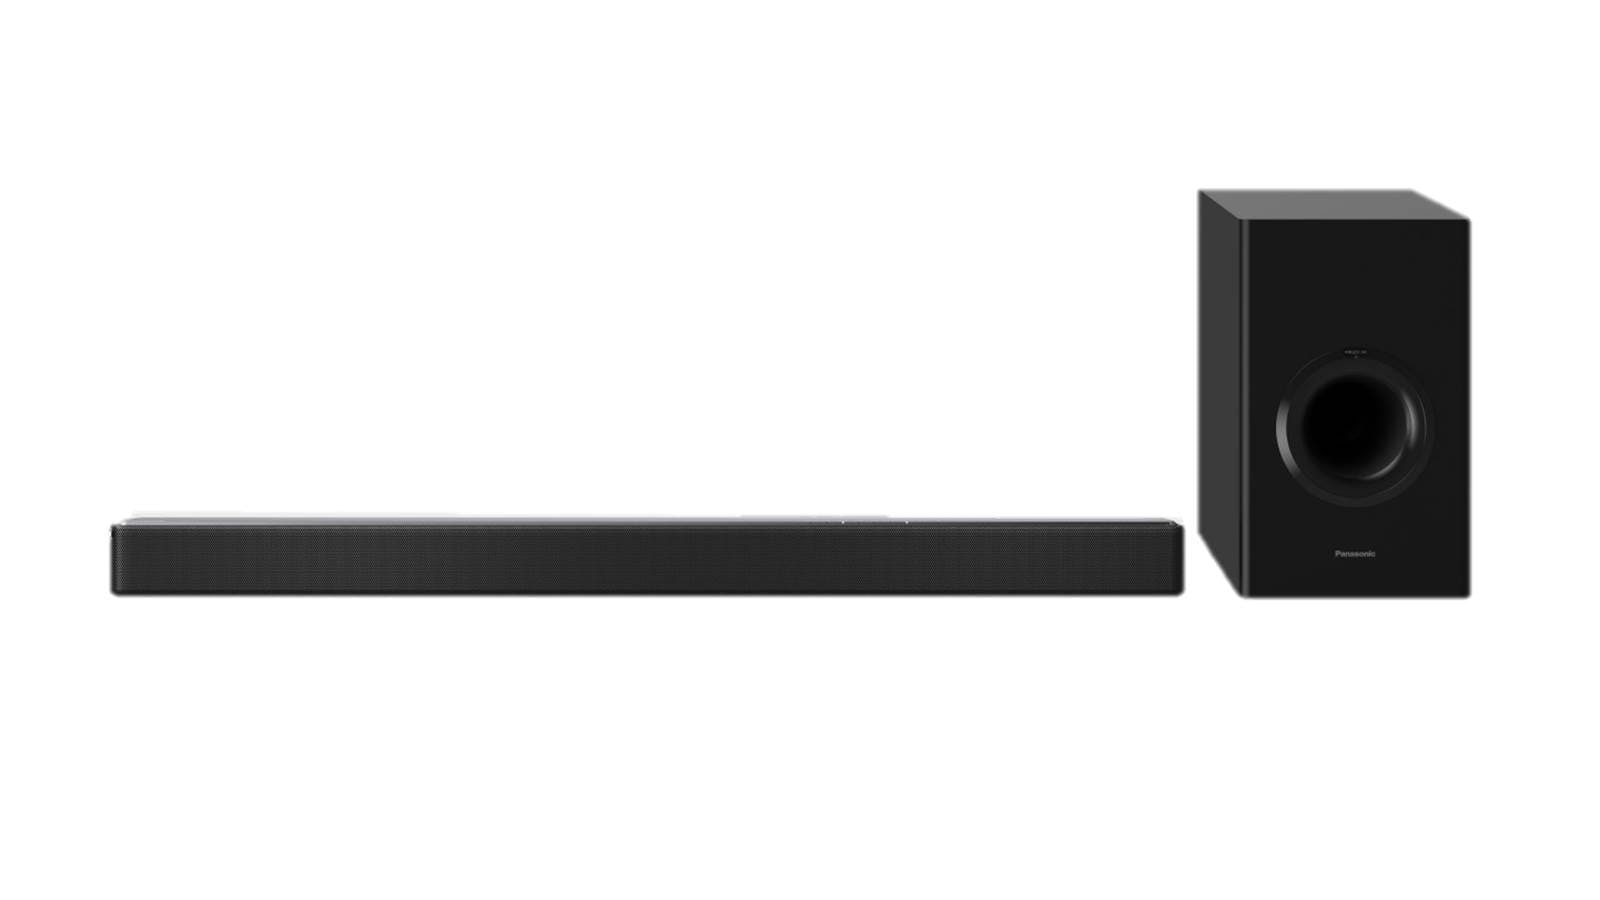 Panasonic Sc Htb688 Soundbar